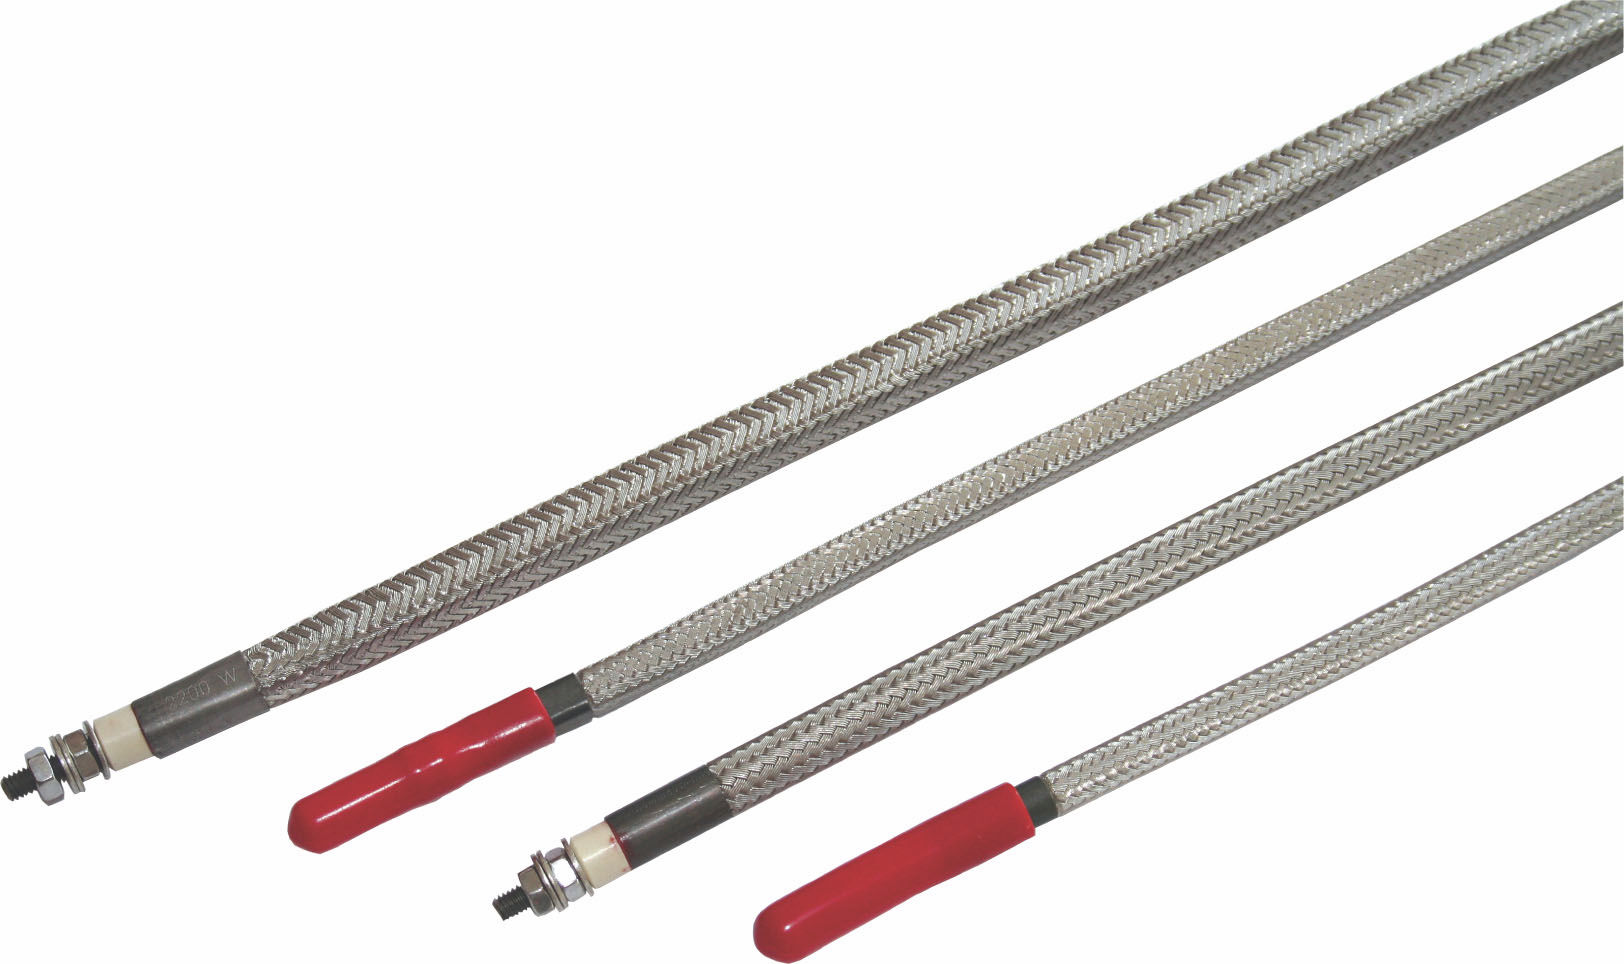 Tubular heating element / flexible - Kuhlmann Electro-Heat A/S